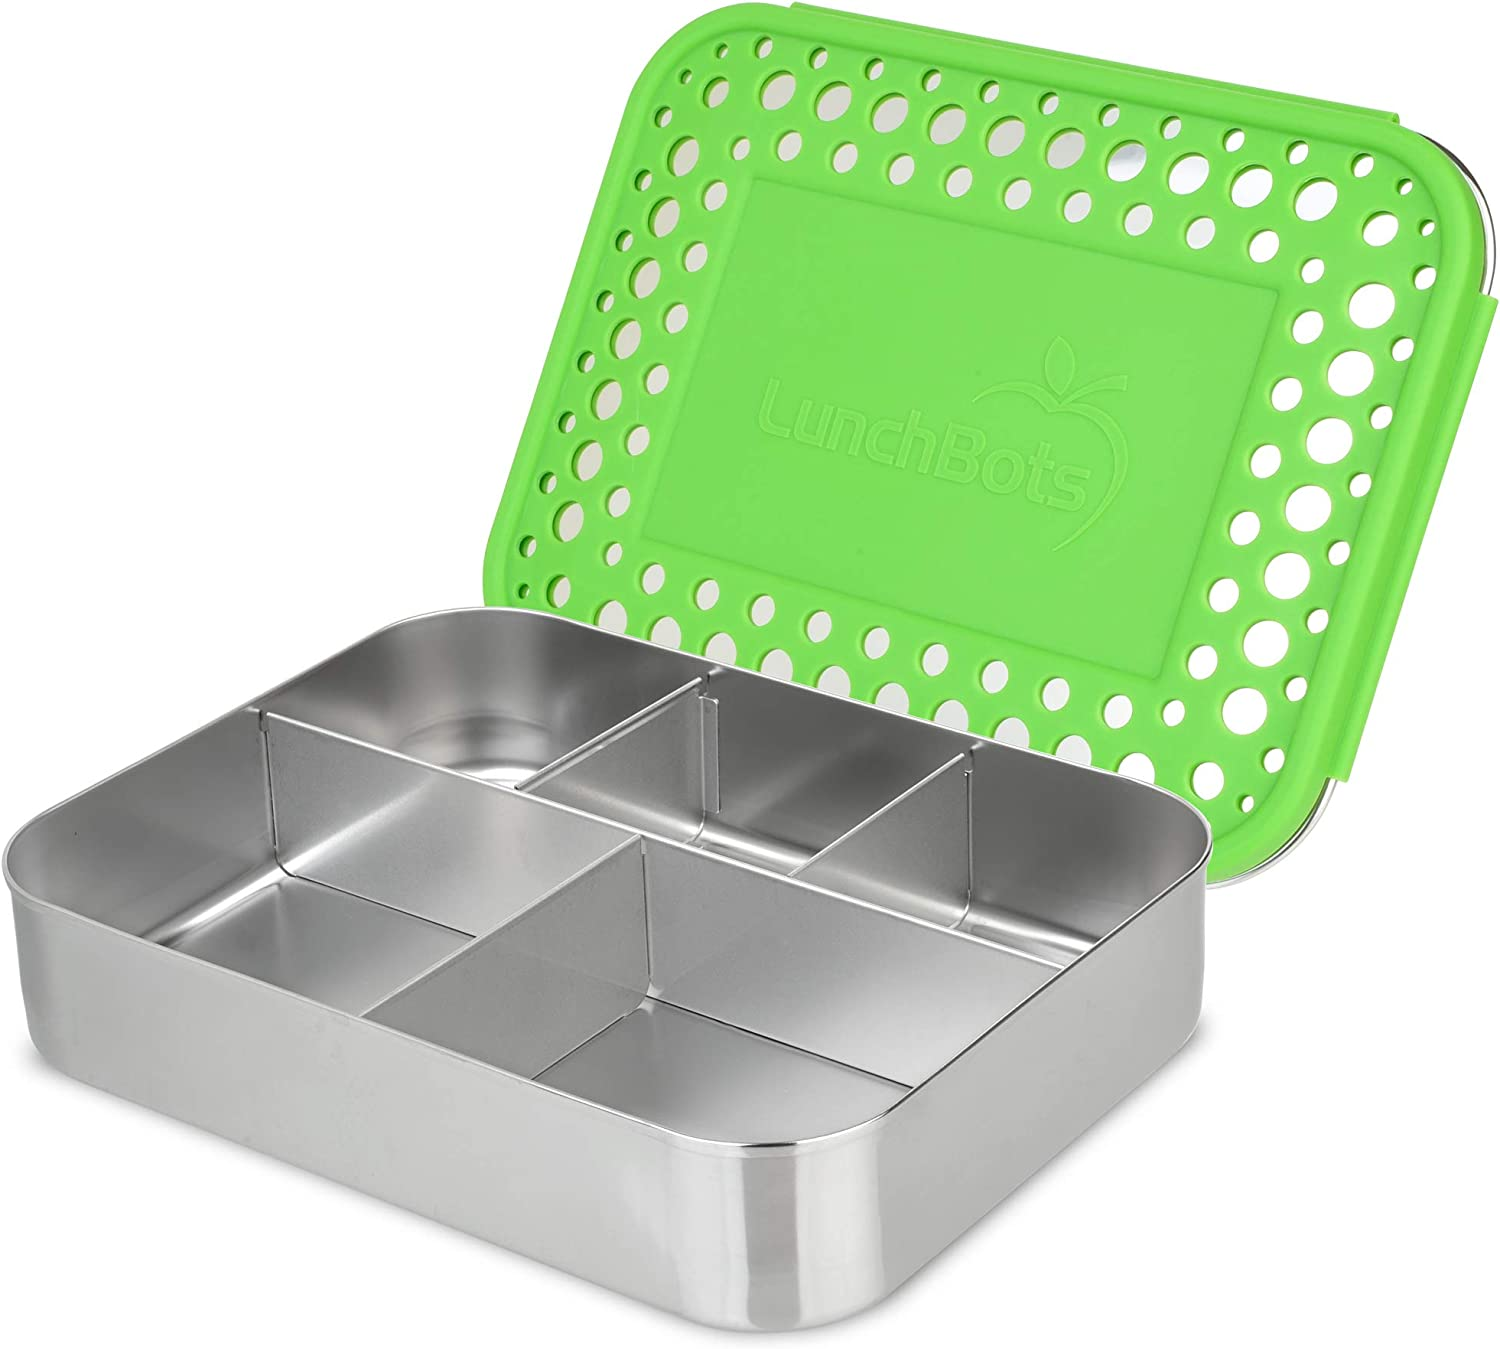 LunchBots Large Cinco Stainless Steel Lunch Container - Five Section Design Holds a Variety of Foods - Metal Bento Box for Kids or Adults - Dishwasher Safe - Stainless Lid - Green Dots